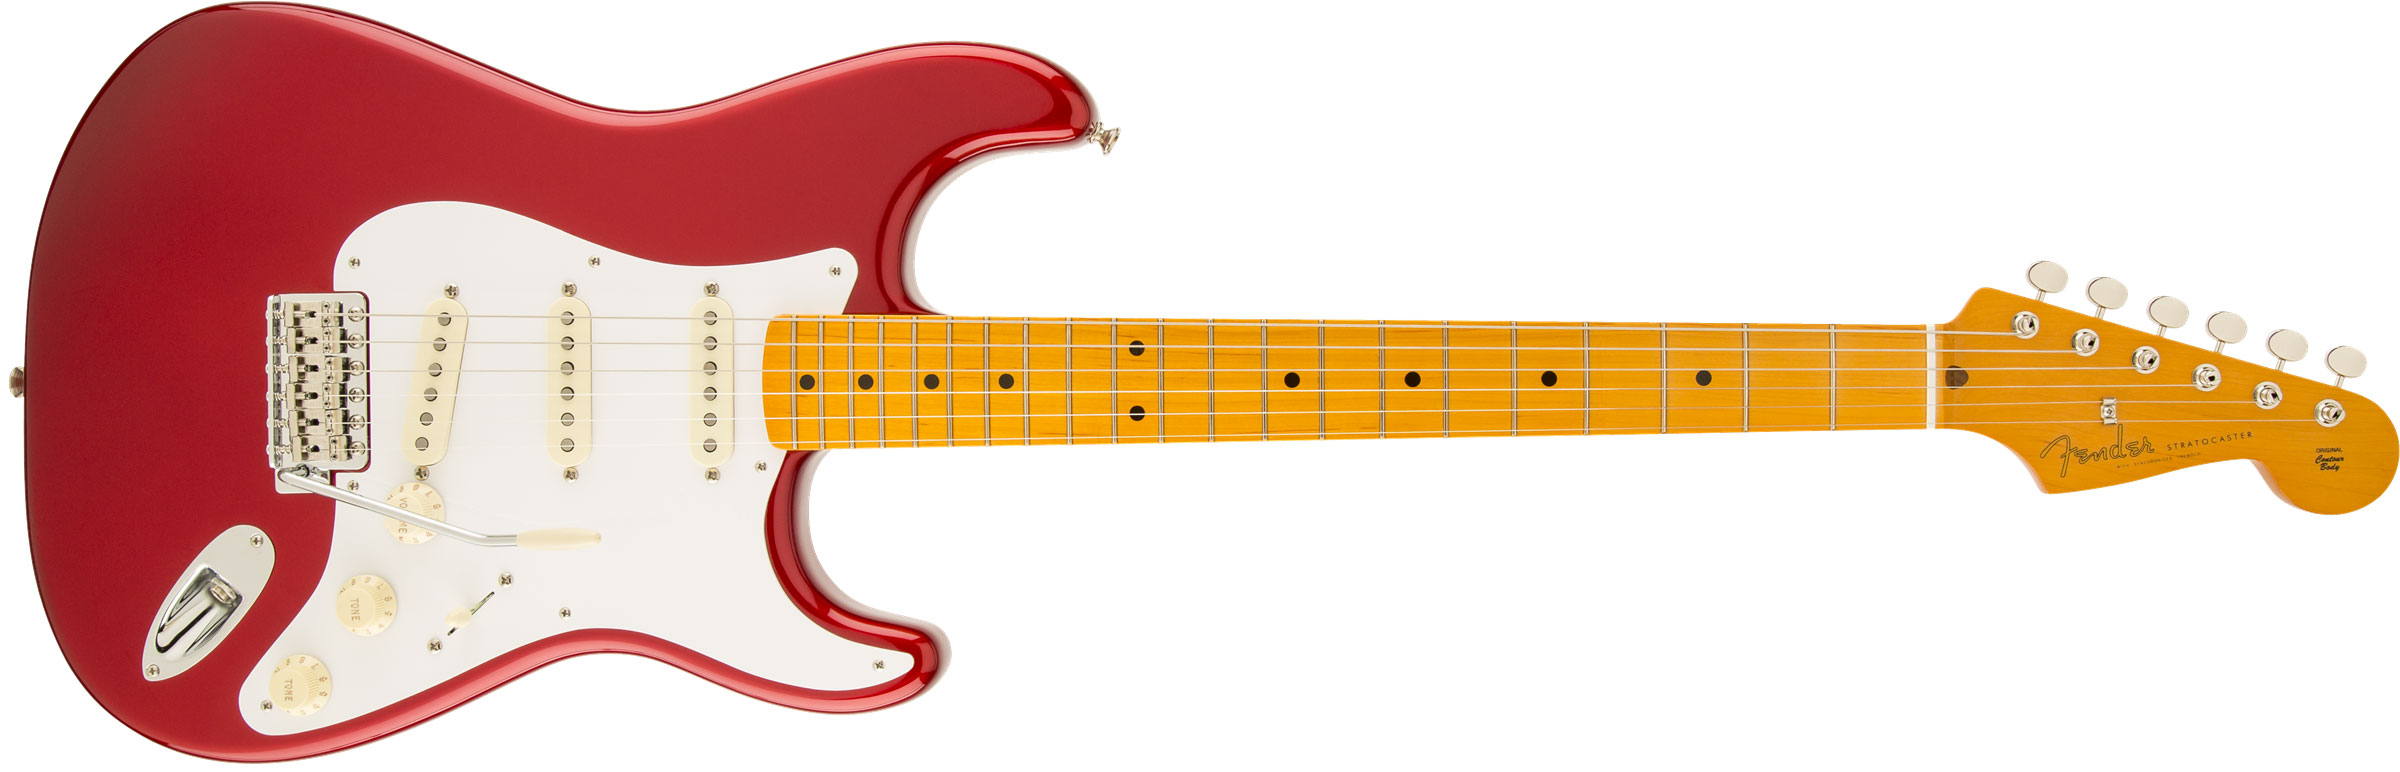 GUITARRA FENDER 014 0061 - 50S STRATOCASTER LACQUER MN - 709 - CANDY APPLE RED